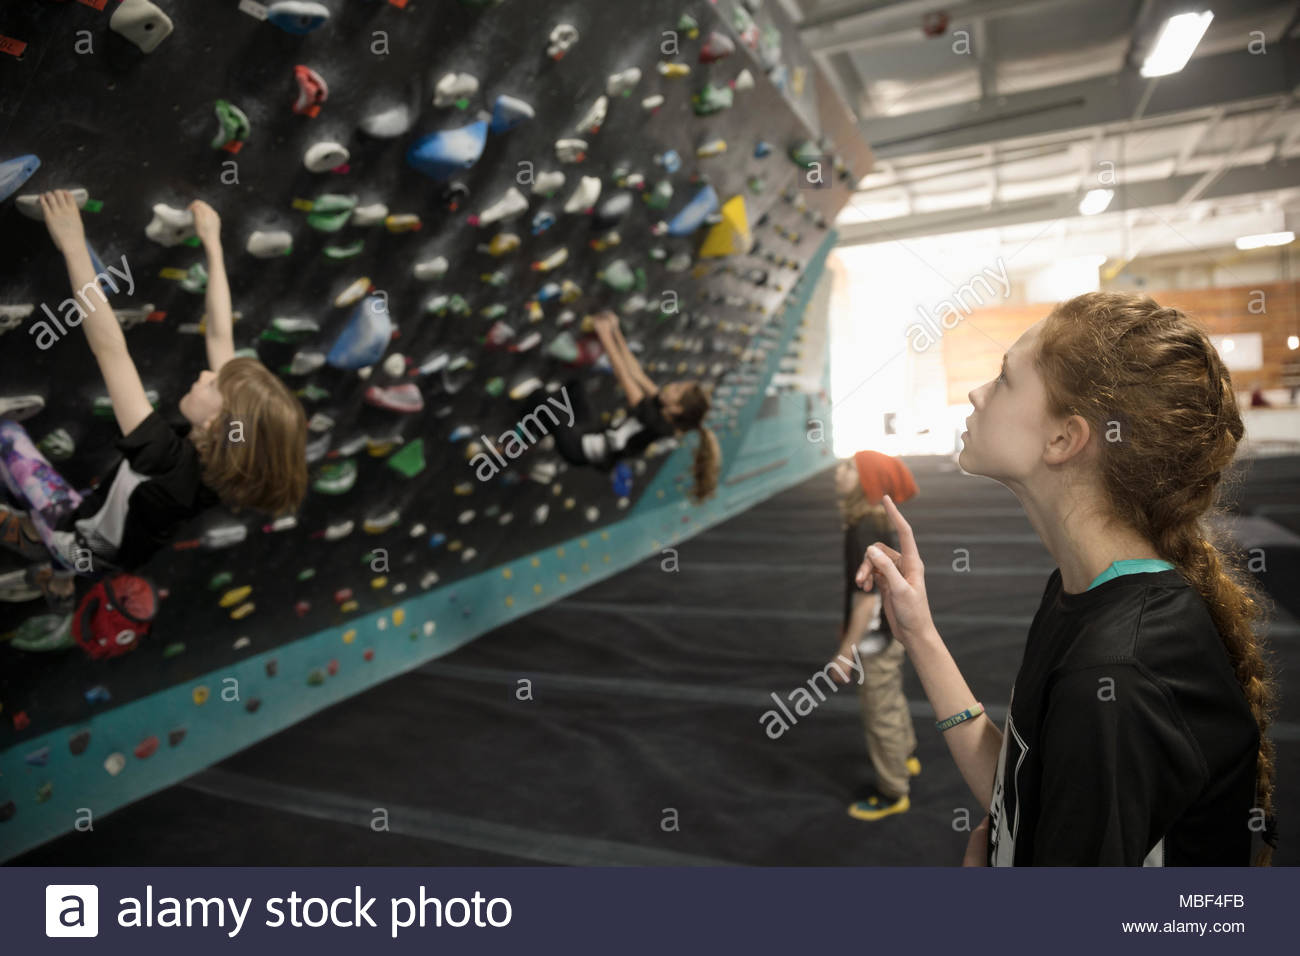 Curious girl rock climber watching friend climbing wall in climbing gym - Stock Image